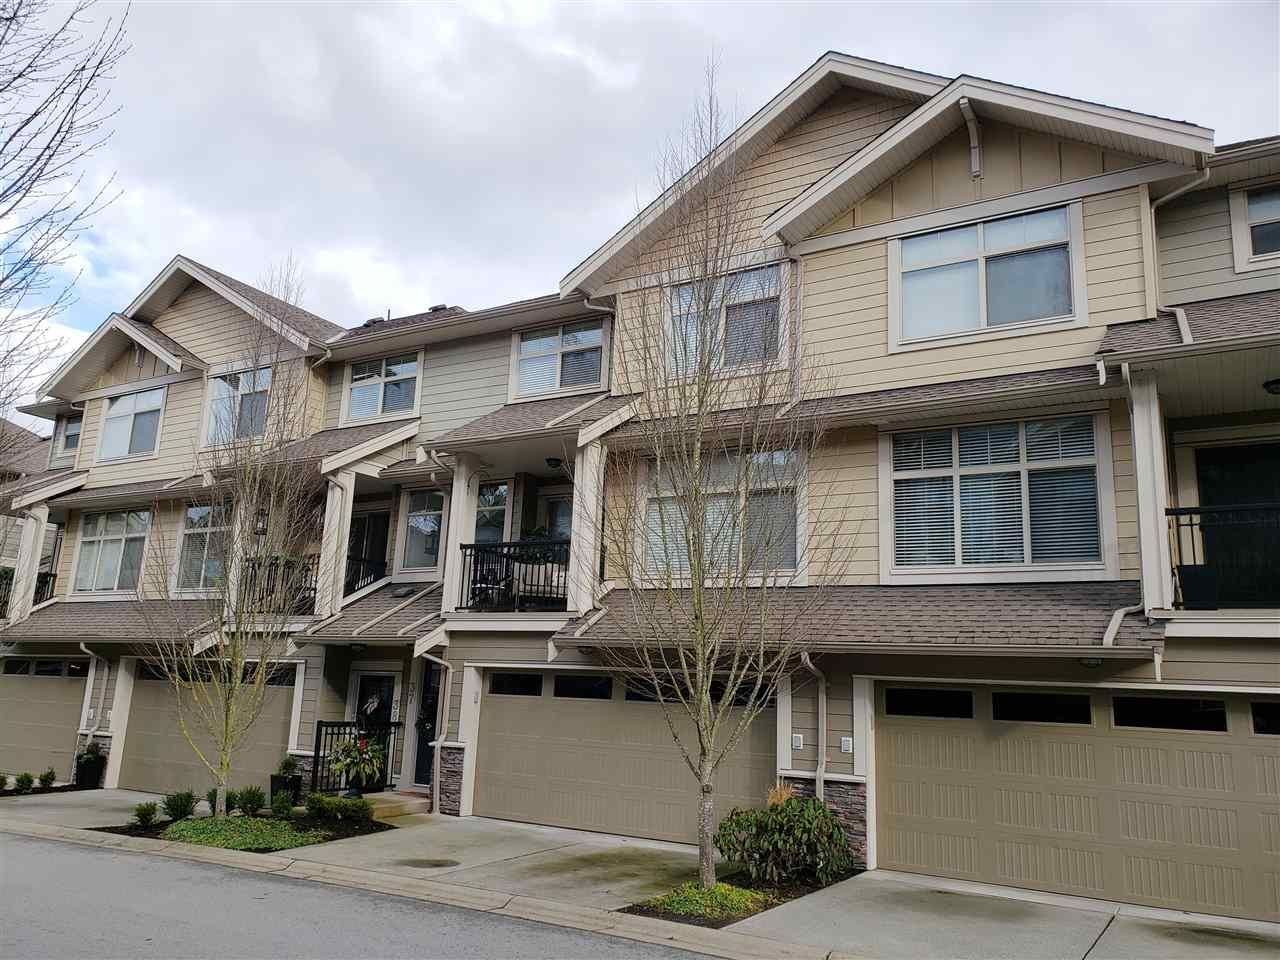 """Main Photo: 37 22225 50 Avenue in Langley: Murrayville Townhouse for sale in """"Murray's Landing"""" : MLS®# R2435449"""